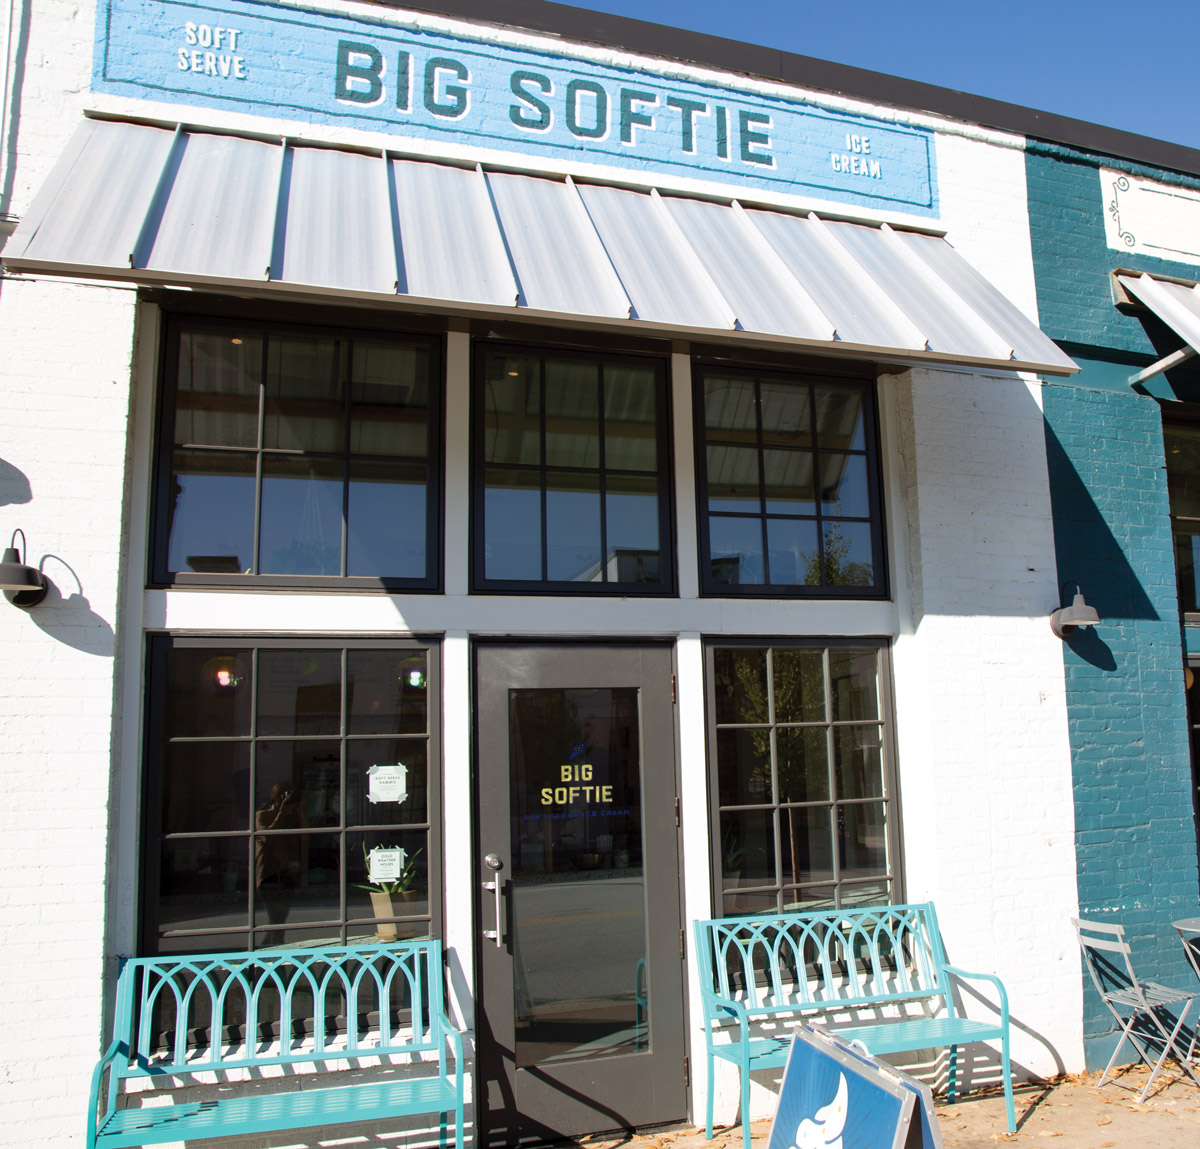 The exterior of Big Softie